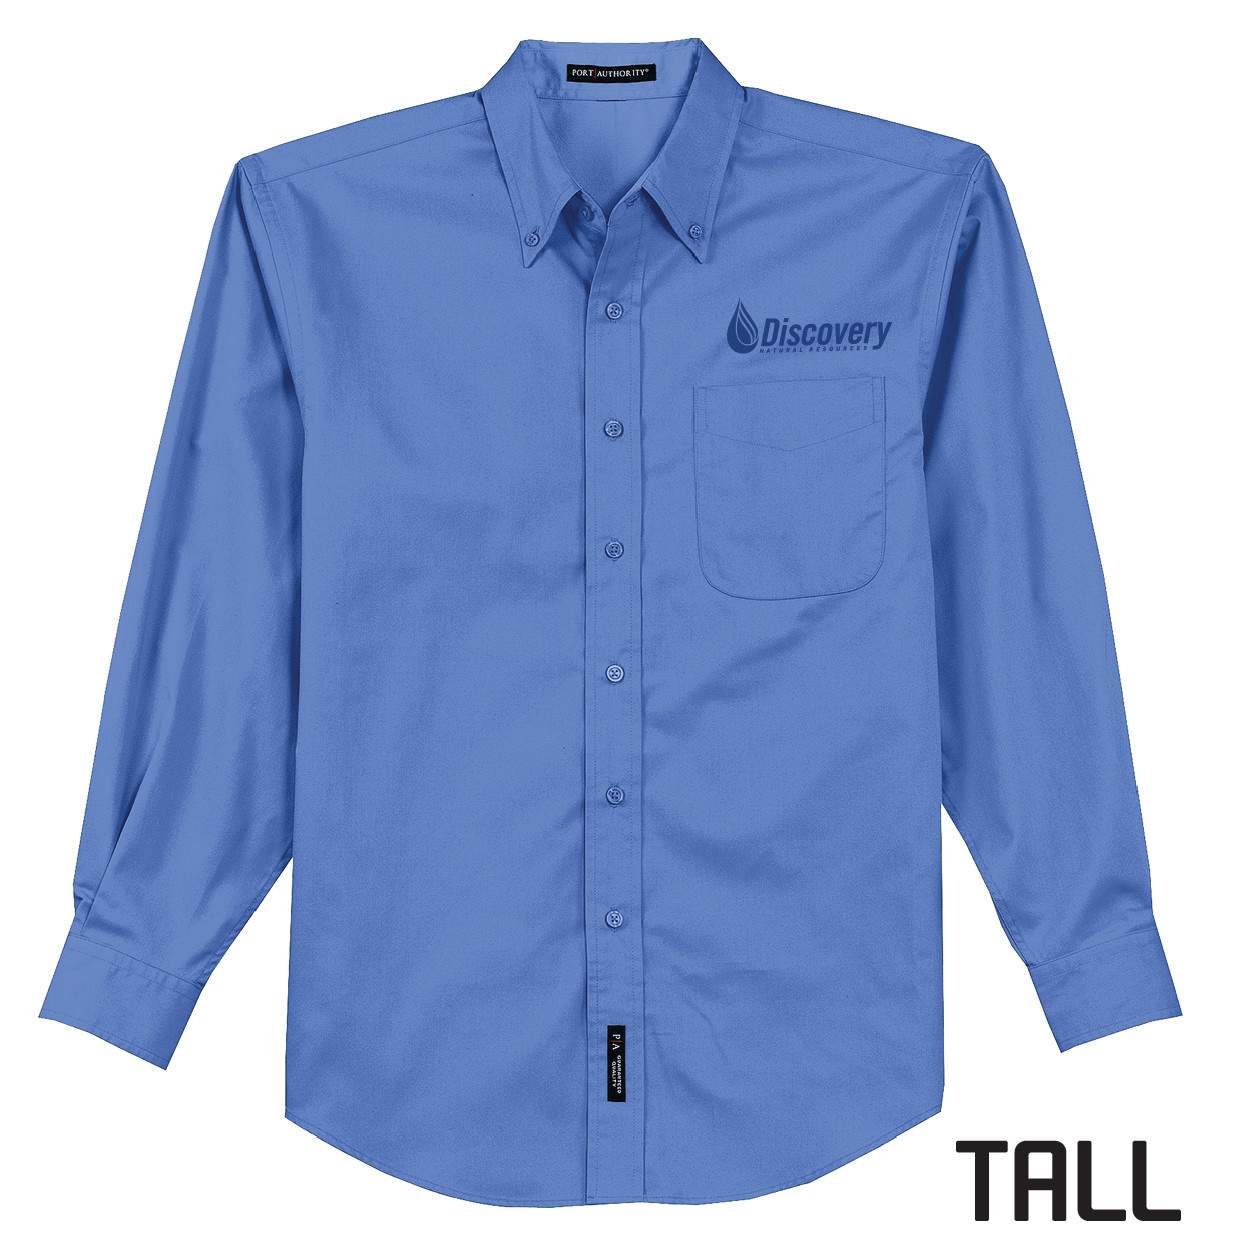 Port Authority Port Authority TALL Long Sleeve Easy Care Shirt (Ultramarine Blue)